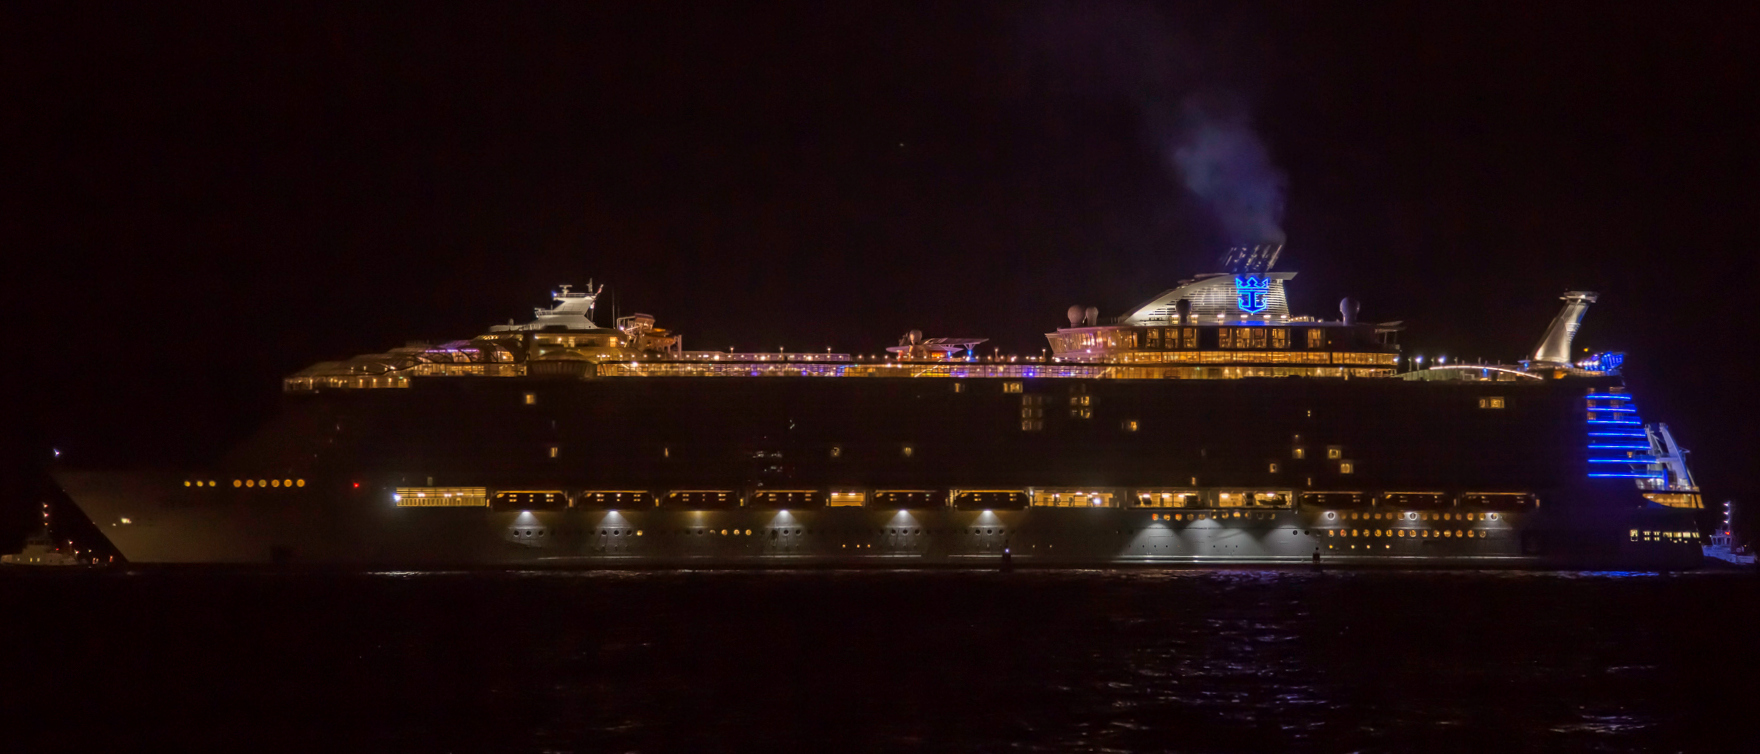 Symphony_of_the_Seas_in_Saint-Nazaire,_France_(25739213827)